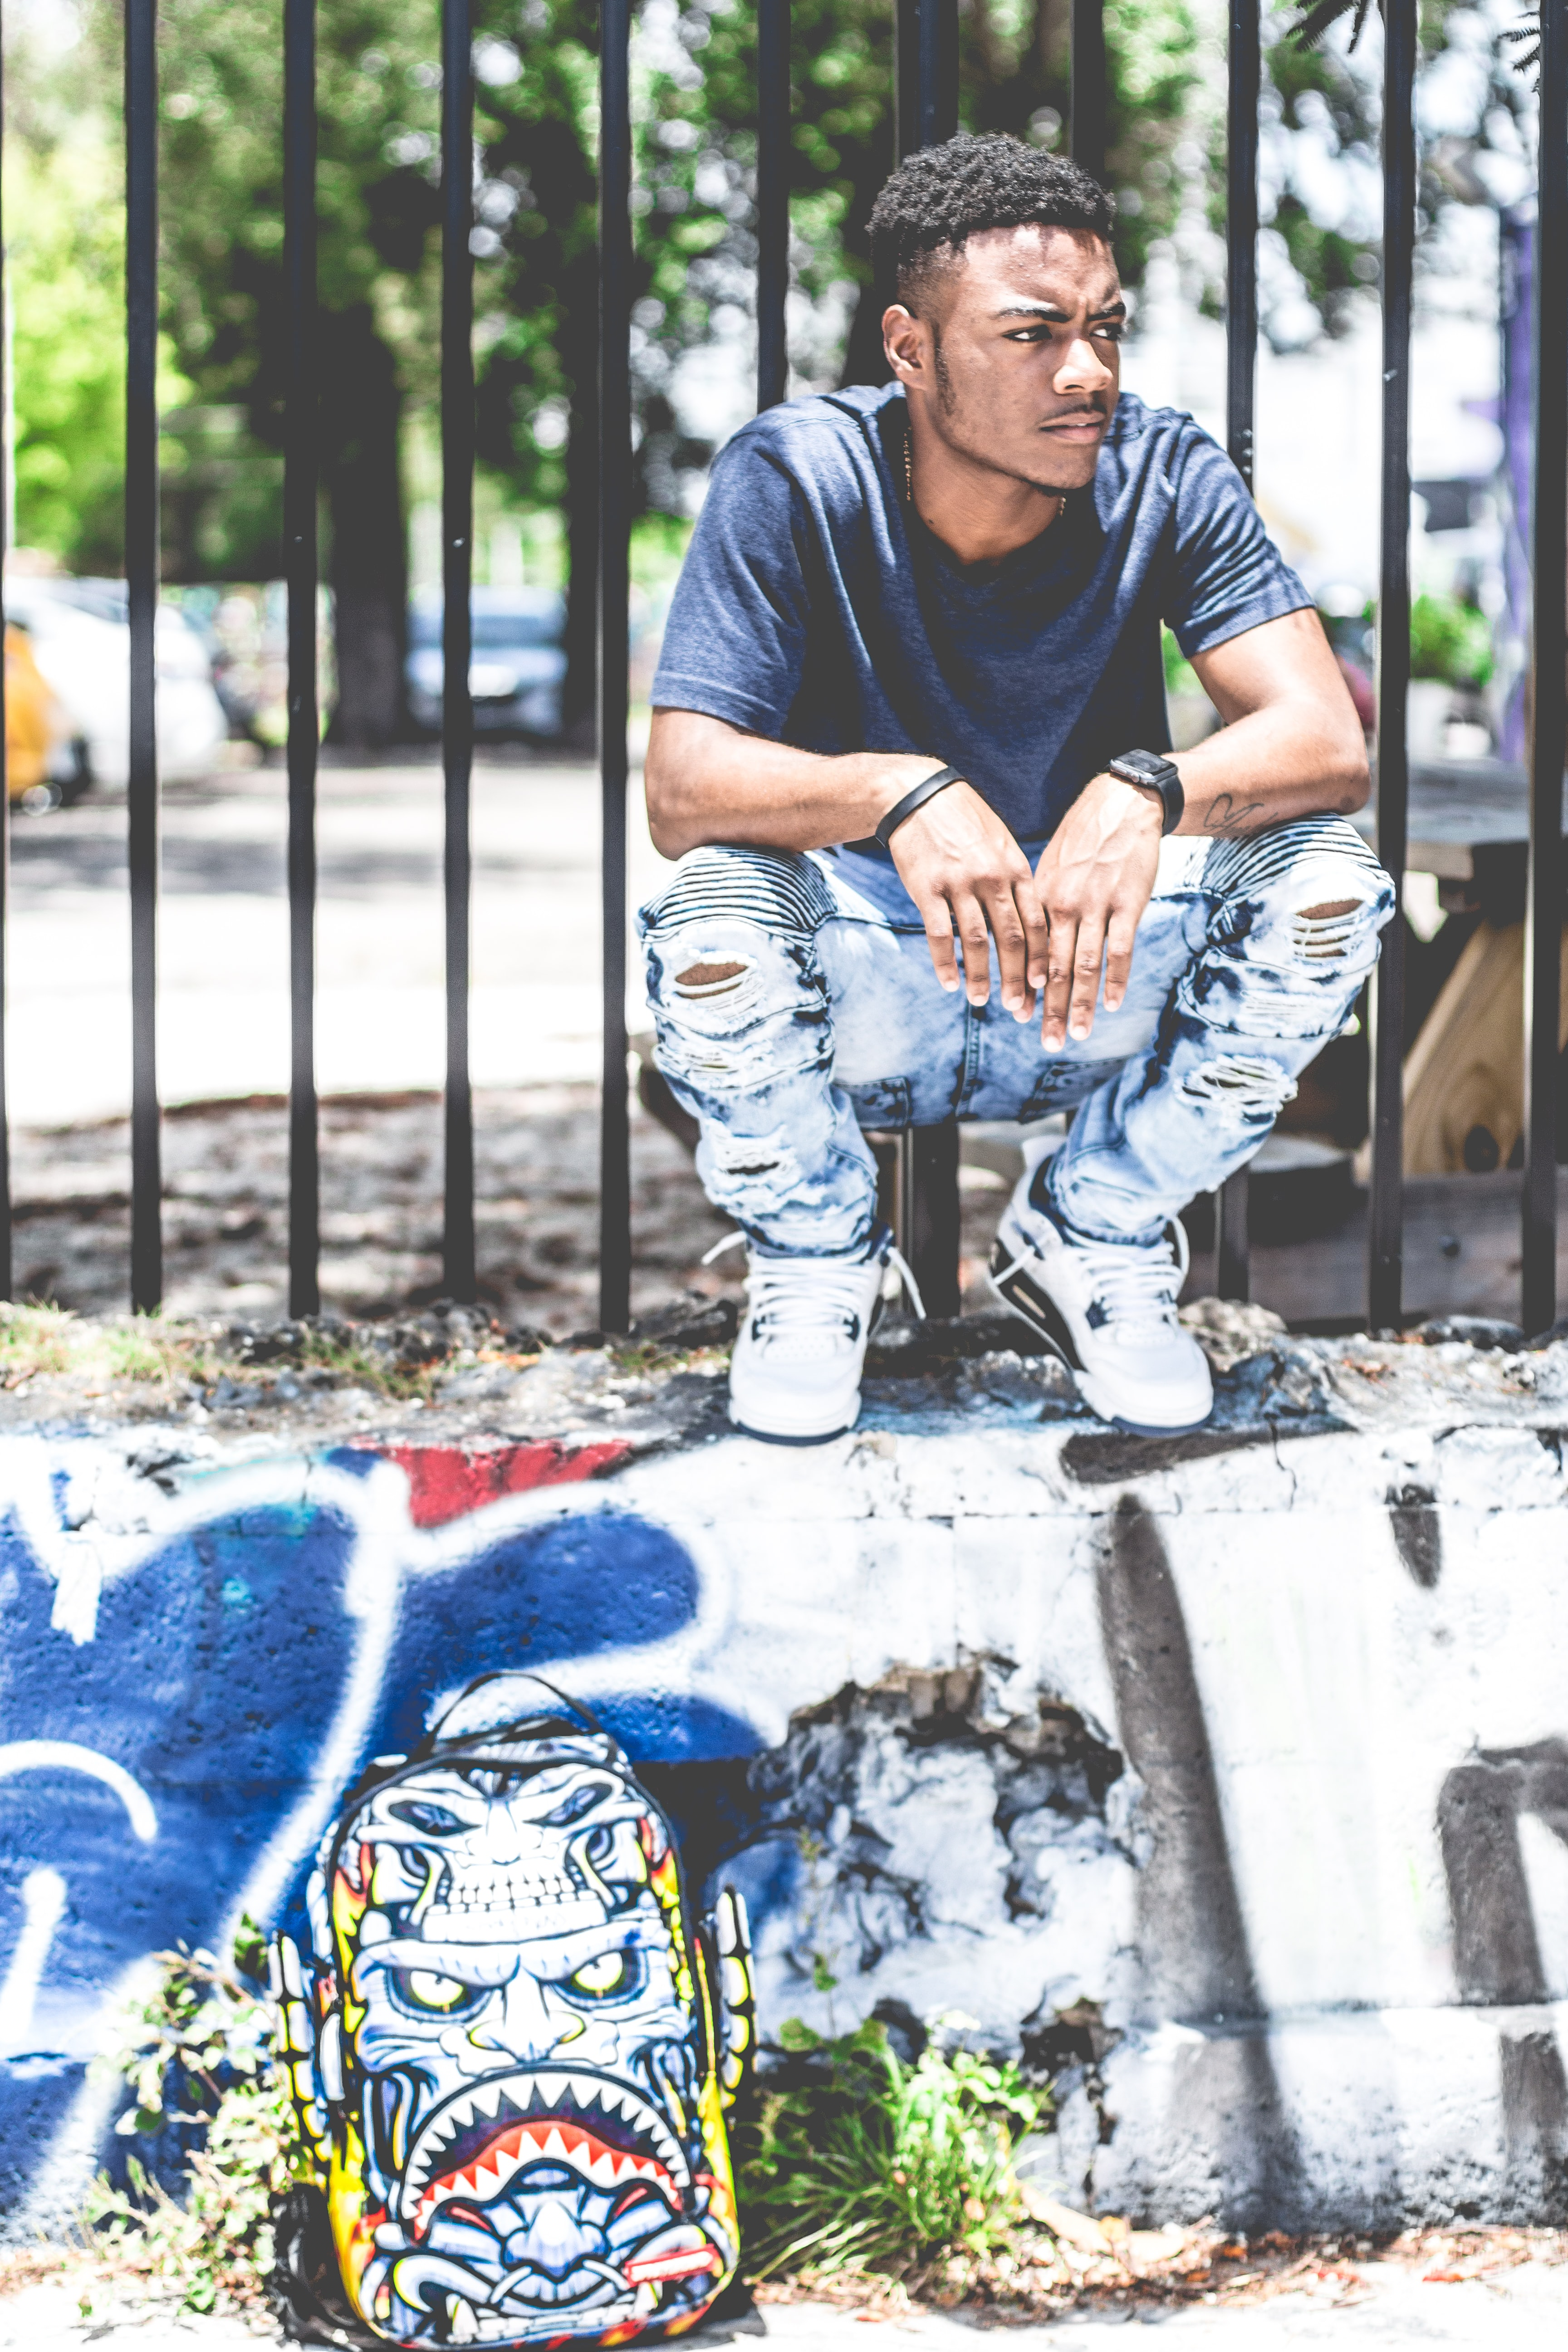 Man wearing urban clothing and watch sitting on a graffitied wall